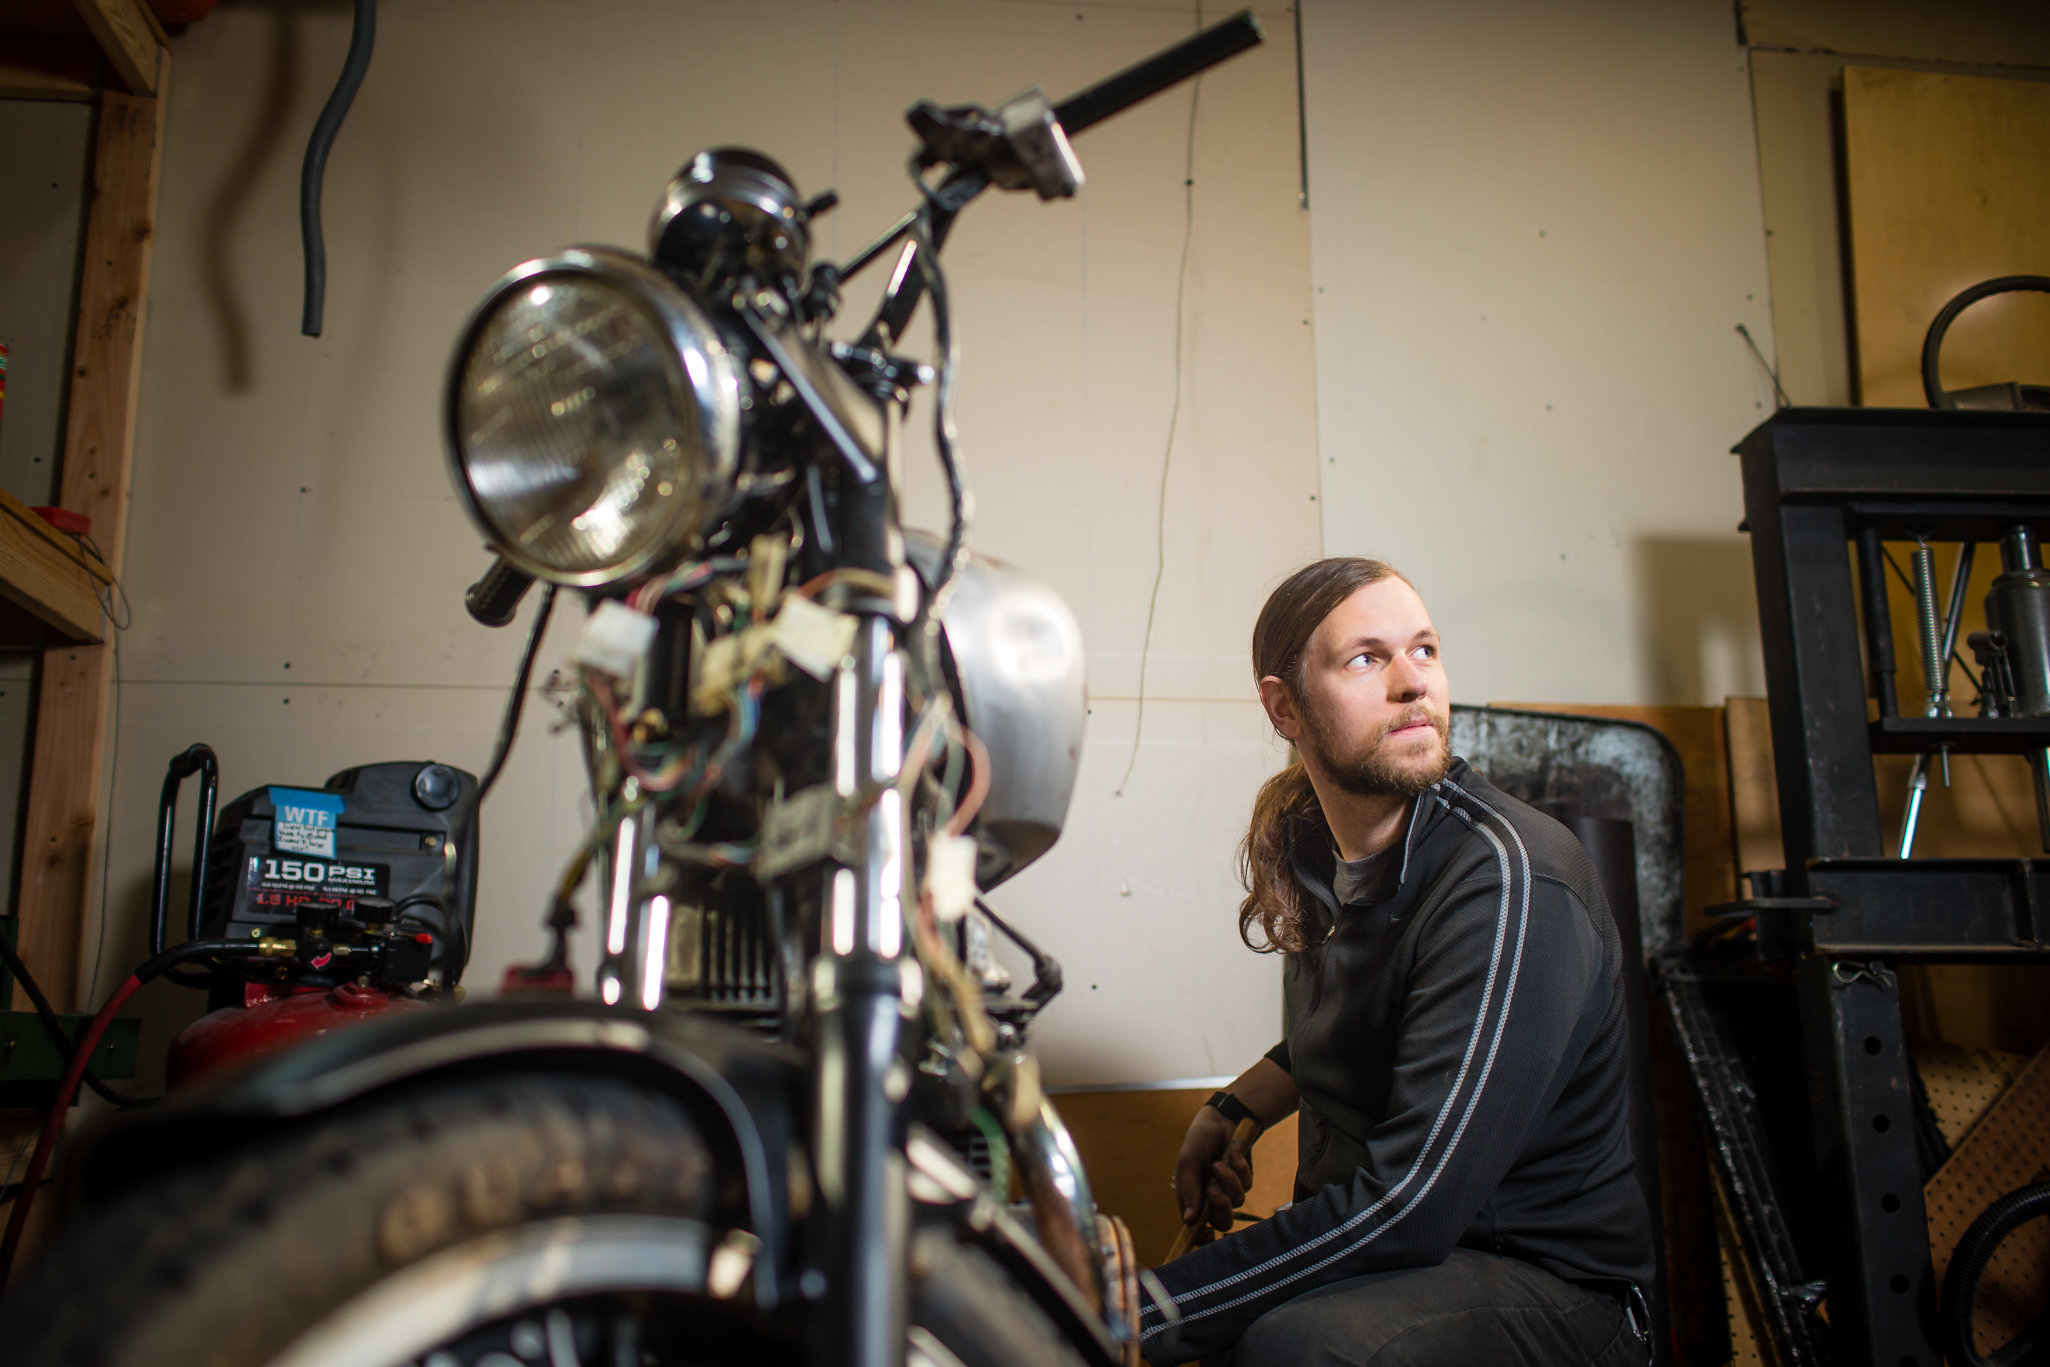 On Saturday, December 6, 2014 Tom Daly, owner of WTF Bikes, works on one of his new motorcycles at his home in Millwaukie, OR. A year ago Daly considered himself invincible and decided not to buy health insurance.  